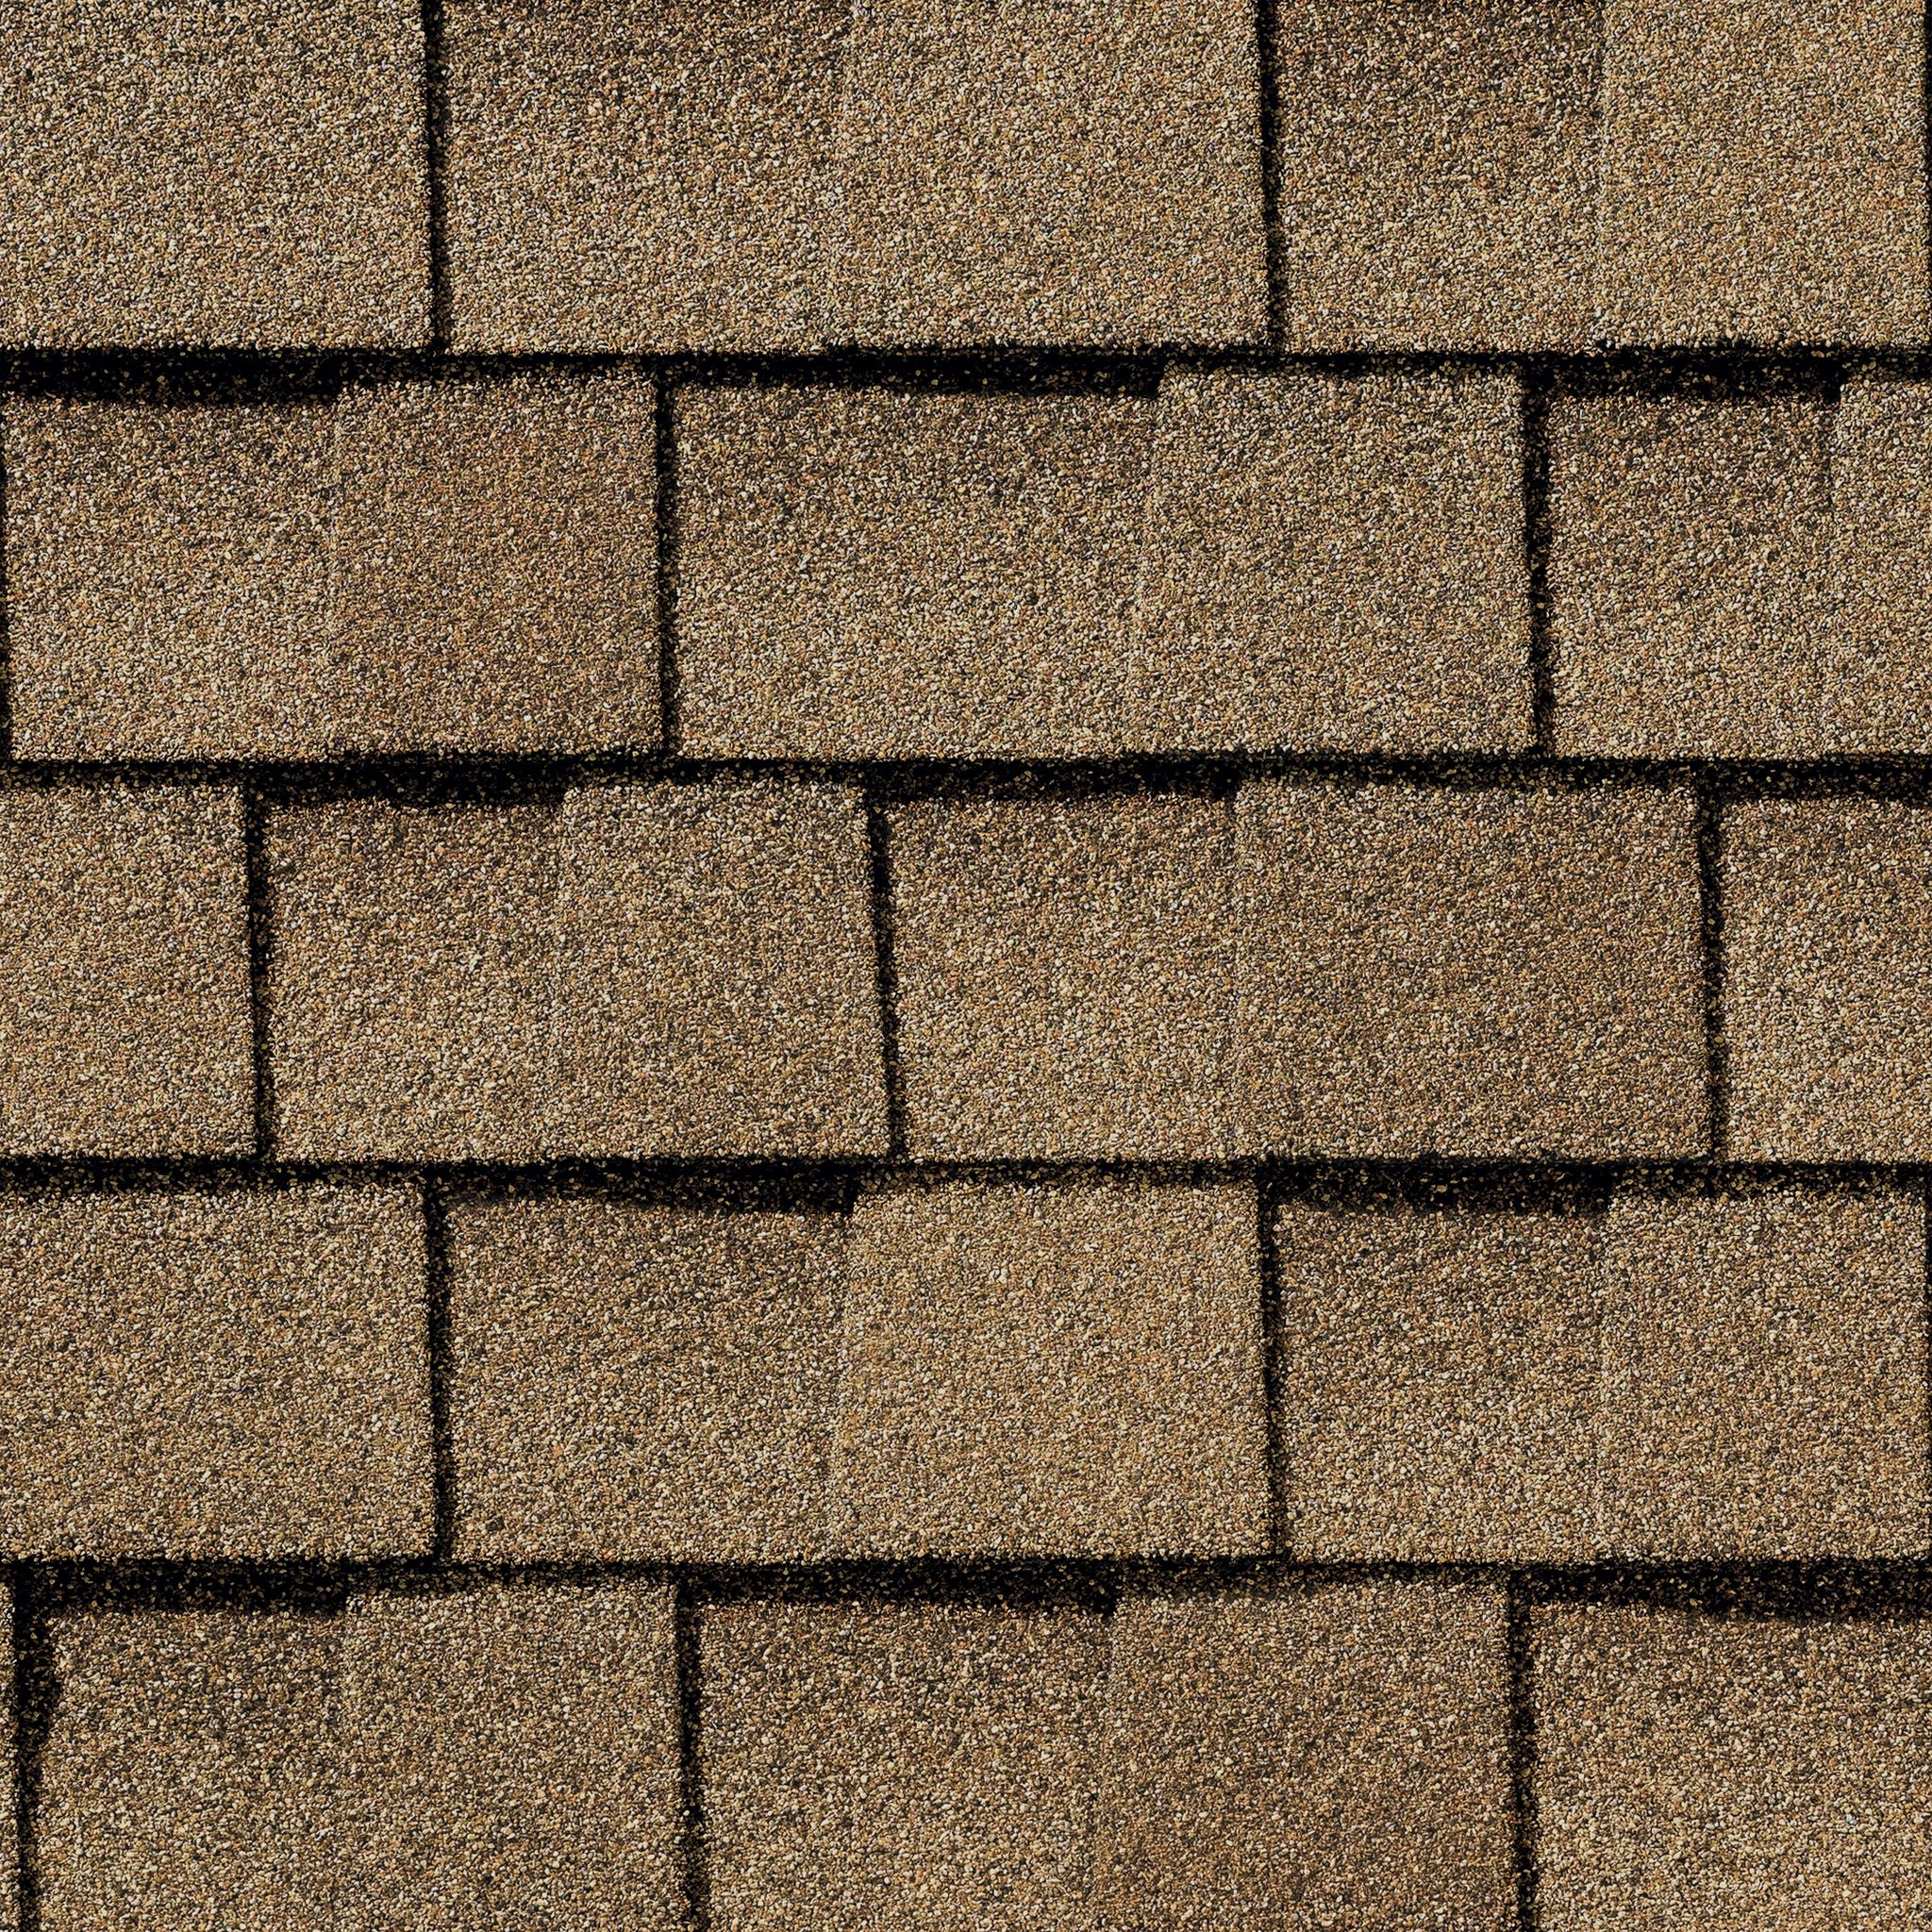 Timberline Natural Shadow Shakewood Architectural Shingles